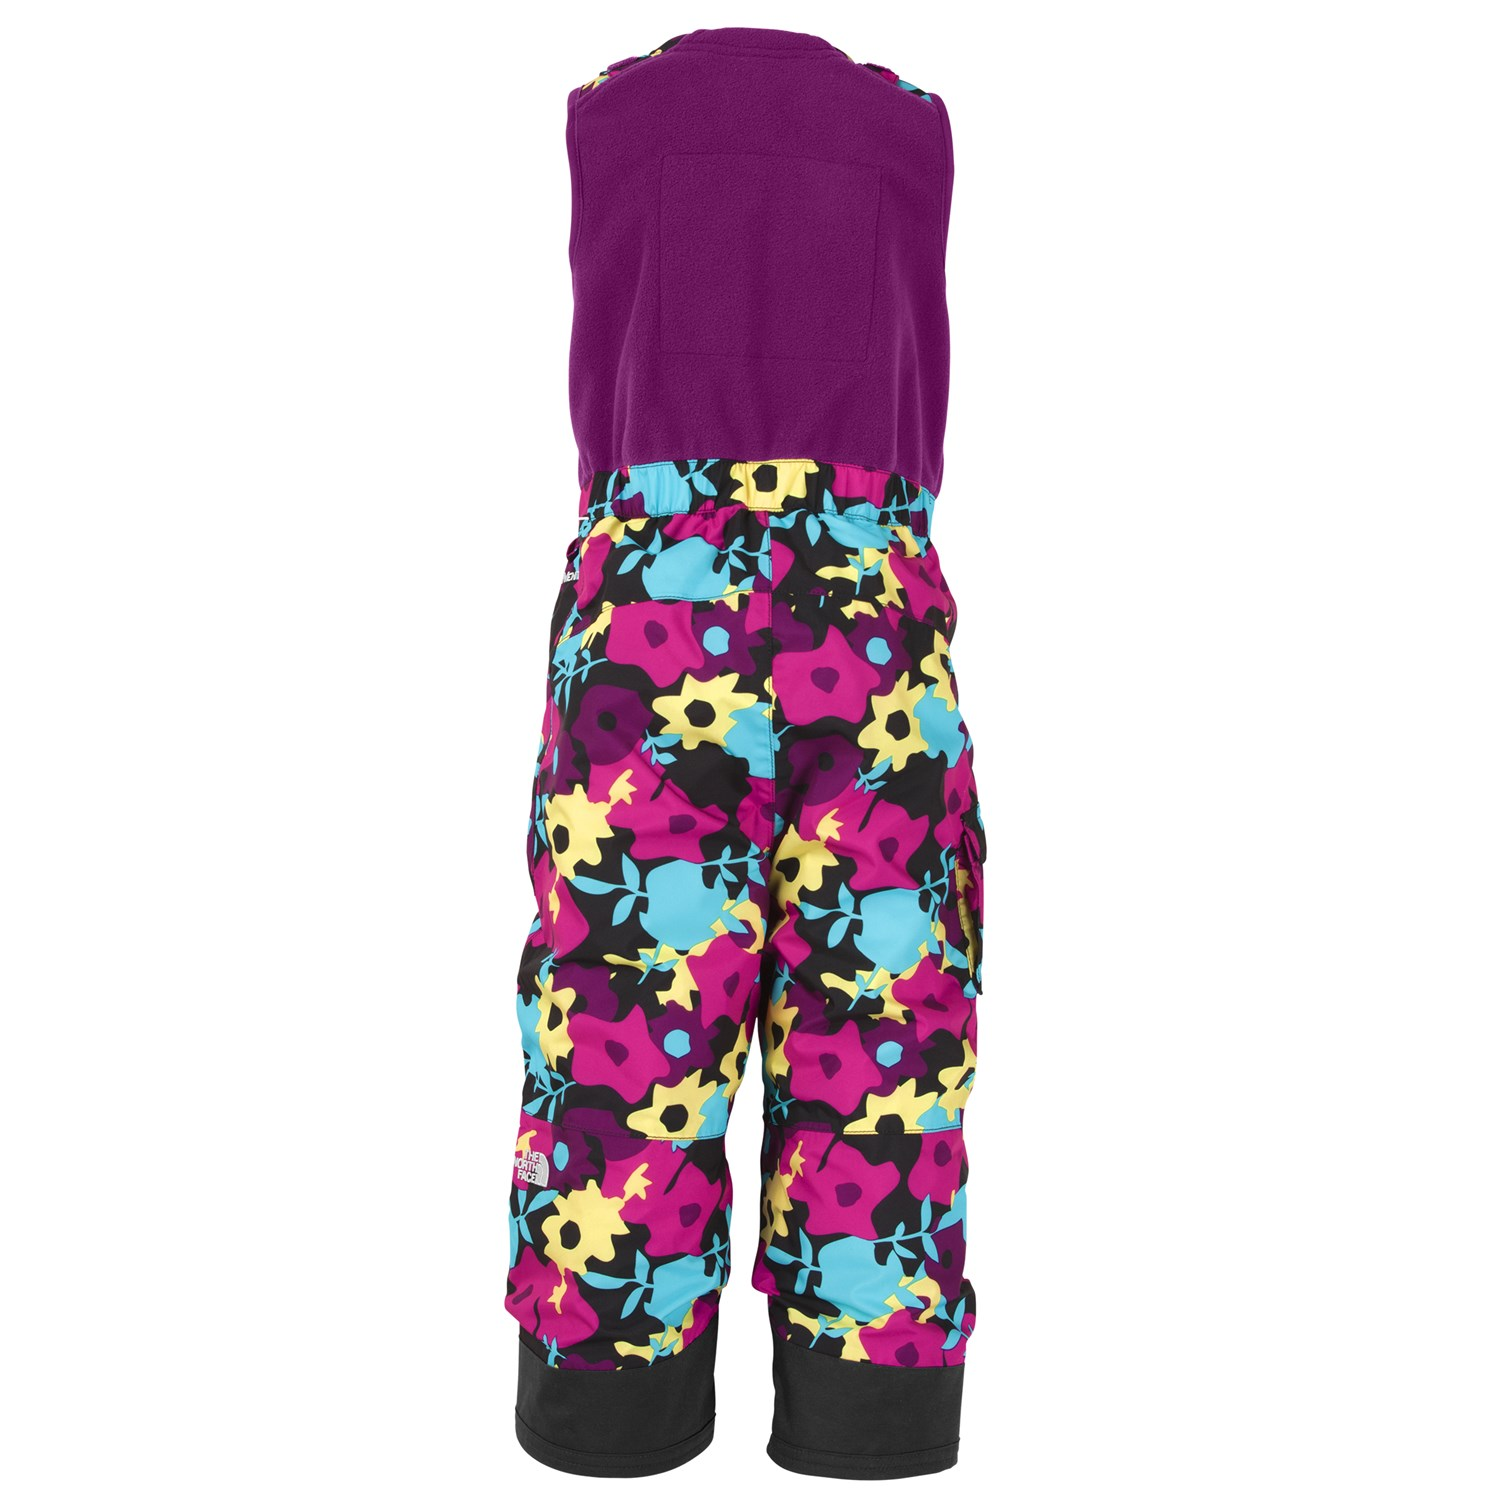 a81bb32a6 The North Face Snowdrift Insulated Bib Pants - Toddler - Girl's | evo